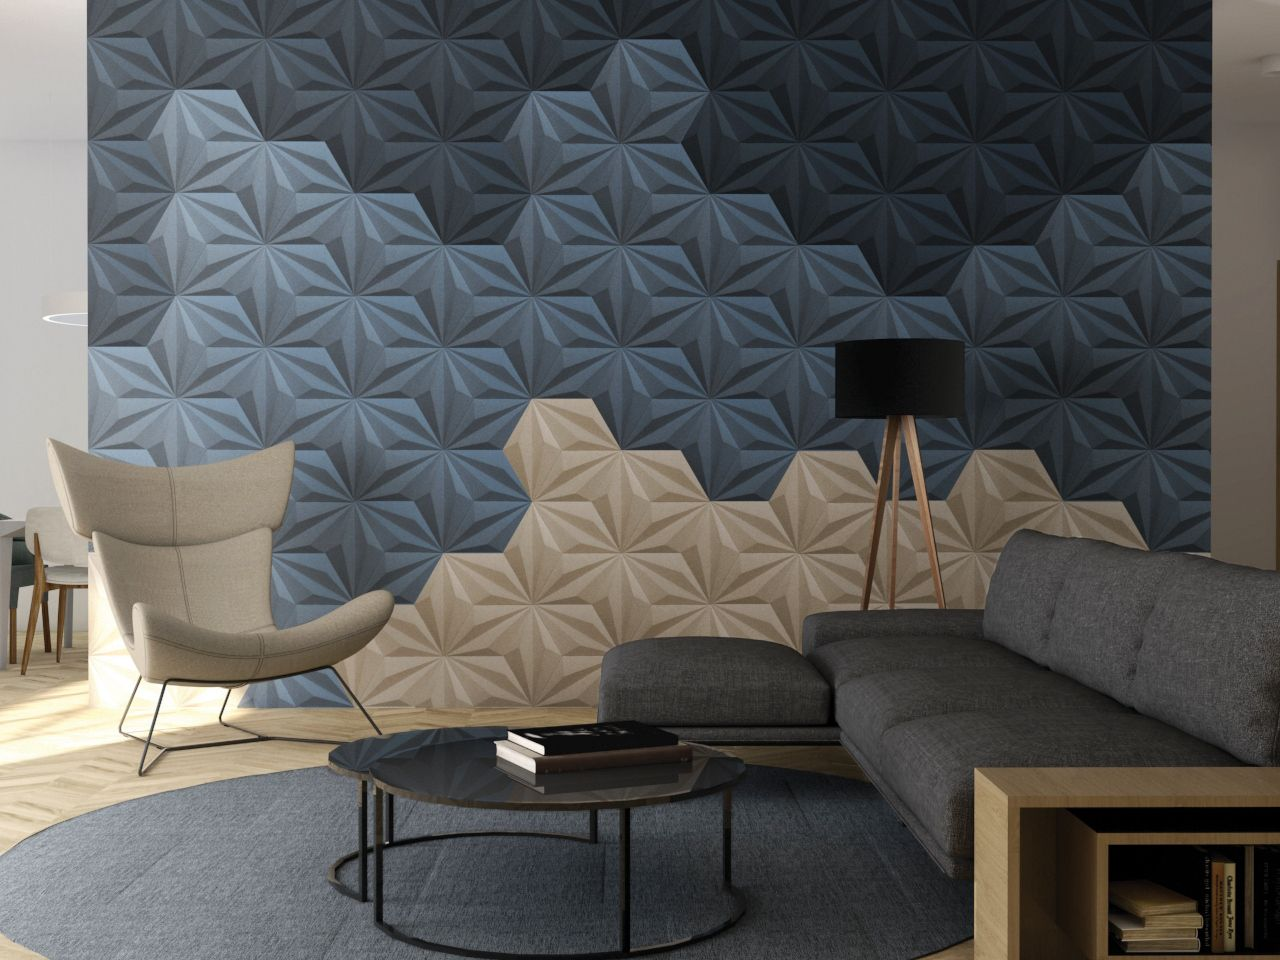 Re Cork 3d Decor Line Panels In Dark Blue Blue And Natural Wall Panel Design Cork Wall Panels Wall Paneling